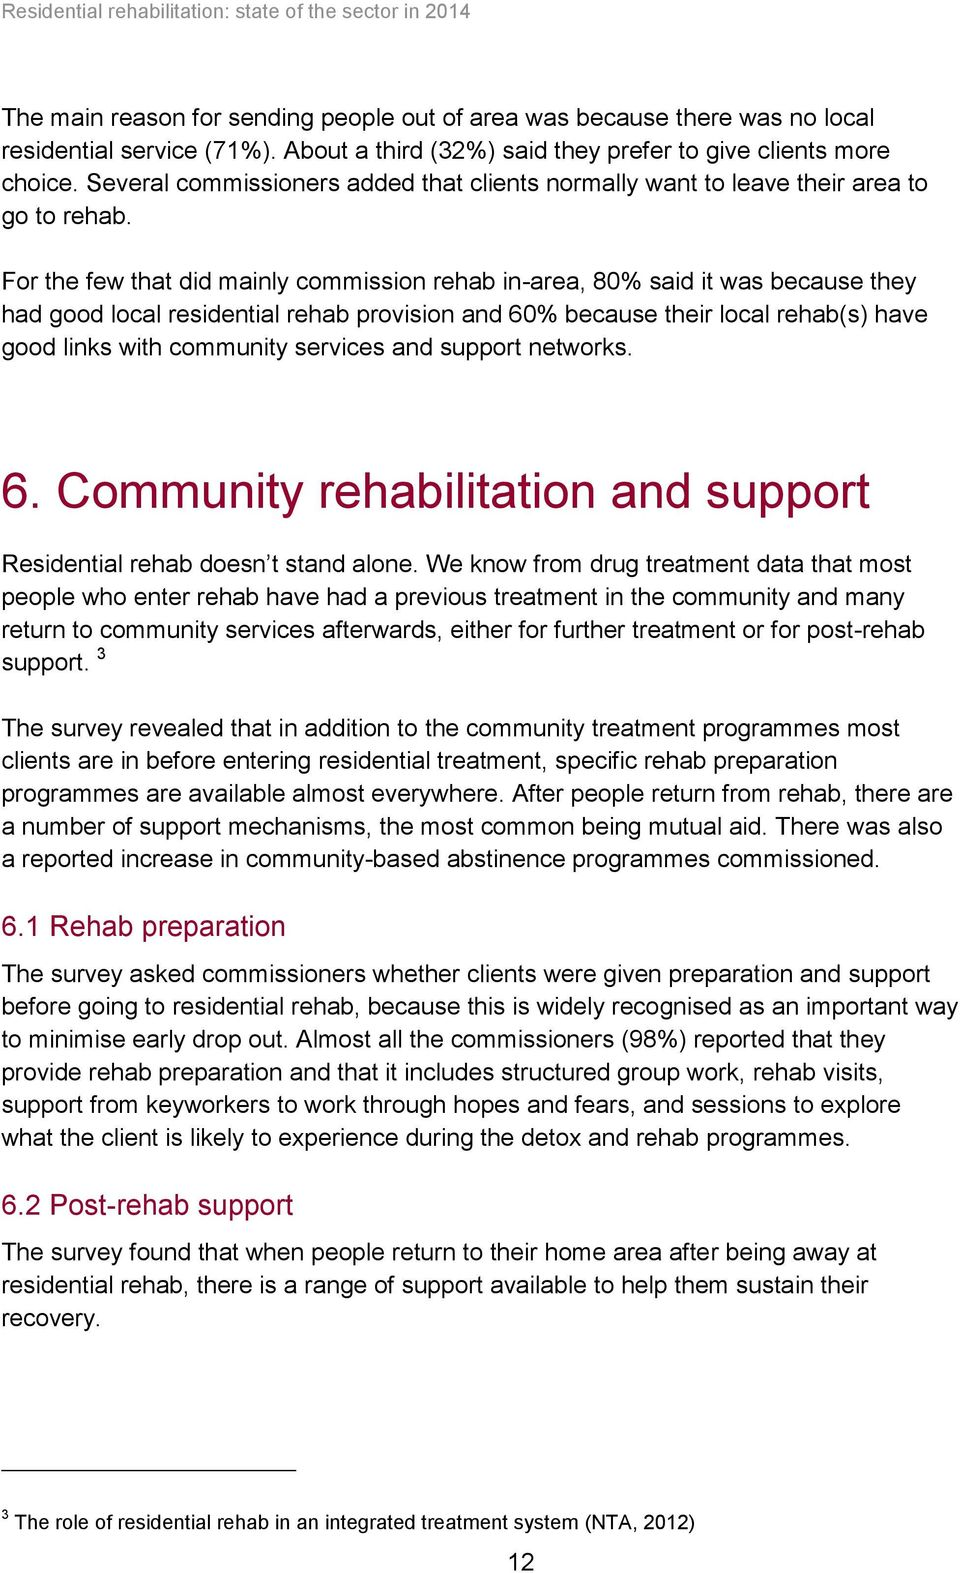 For the few that did mainly commission rehab in-area, 80% said it was because they had good local residential rehab provision and 60% because their local rehab(s) have good links with community